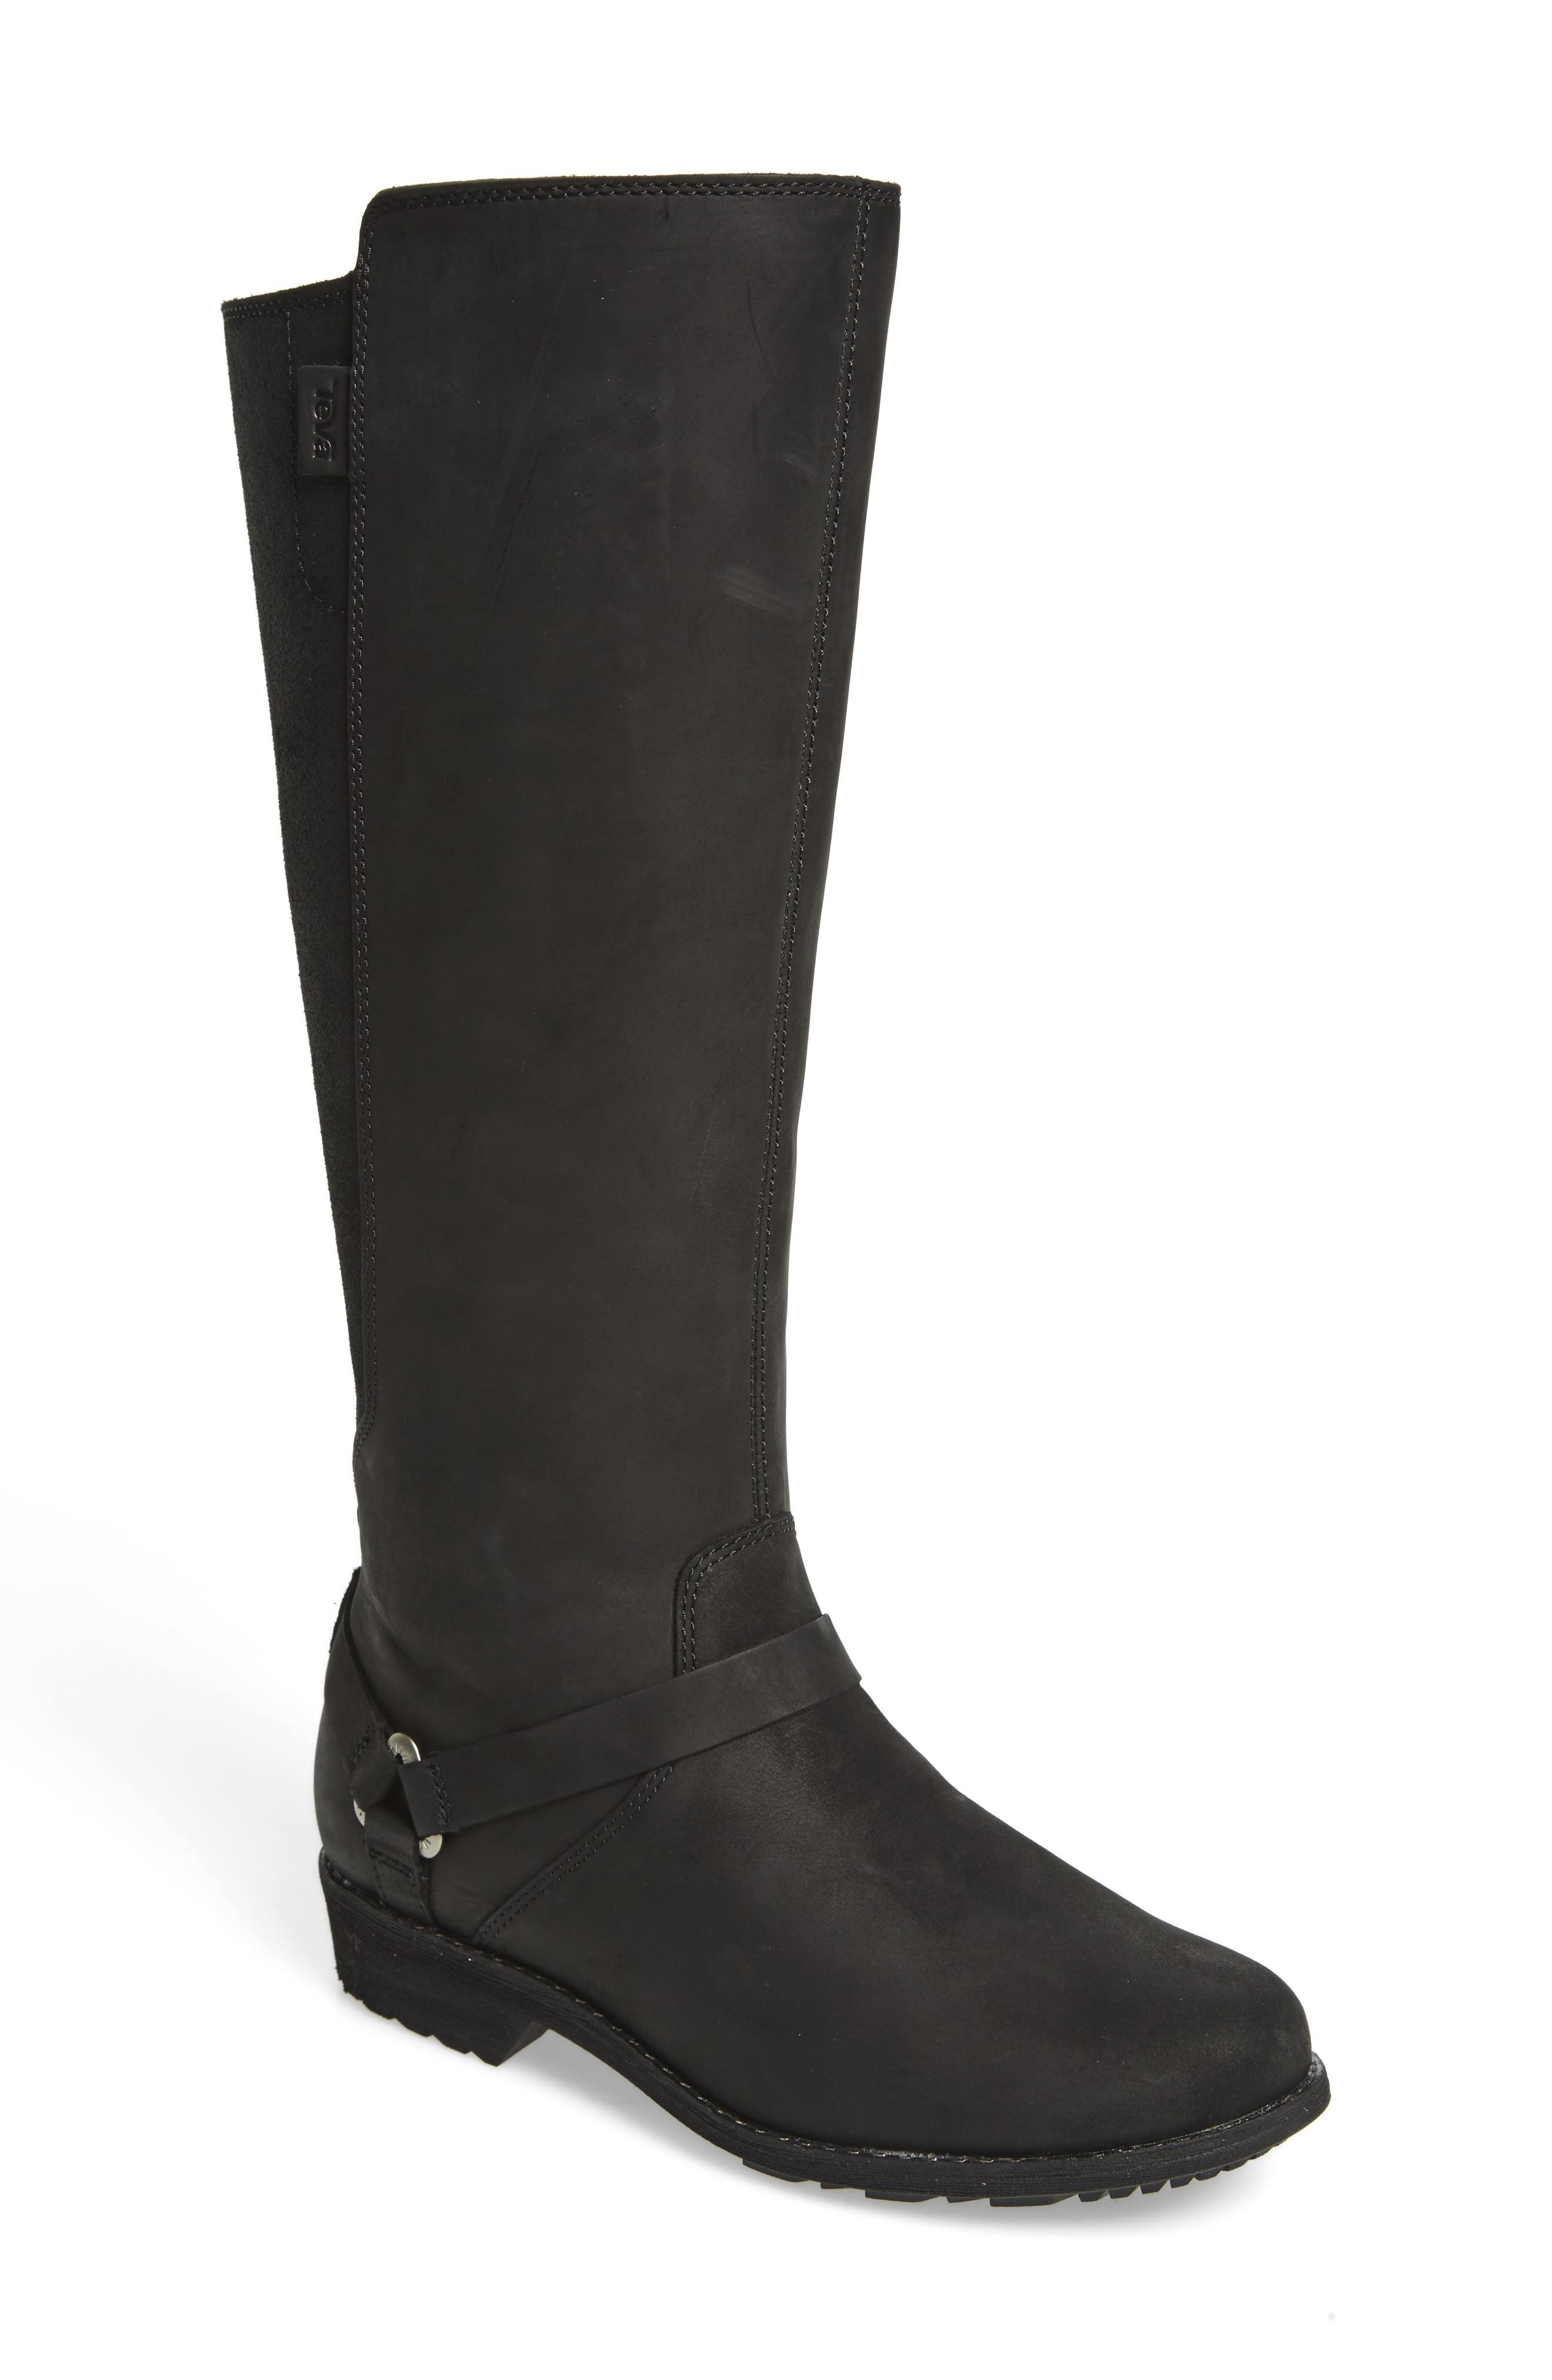 Teva De La Vina Waterproof Boot